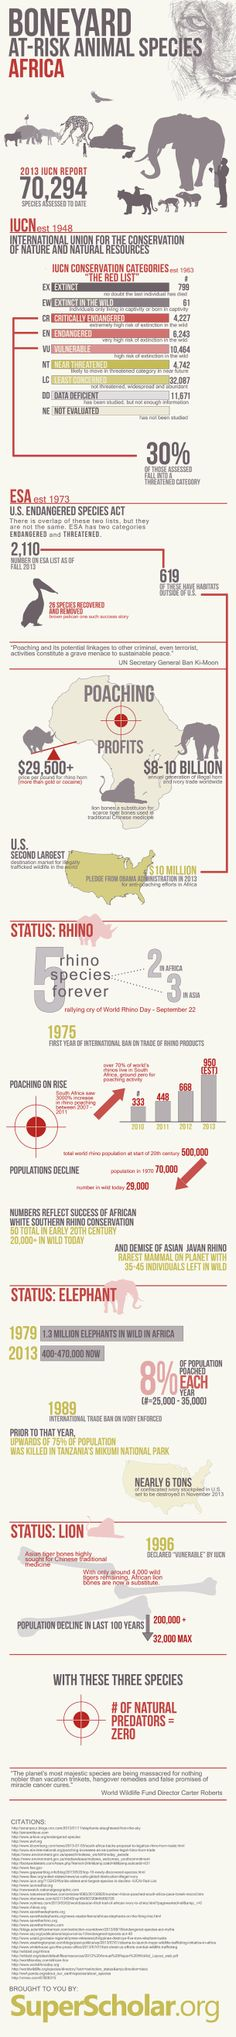 At-Risk Animal Species: Africa [INFOGRAPHIC]